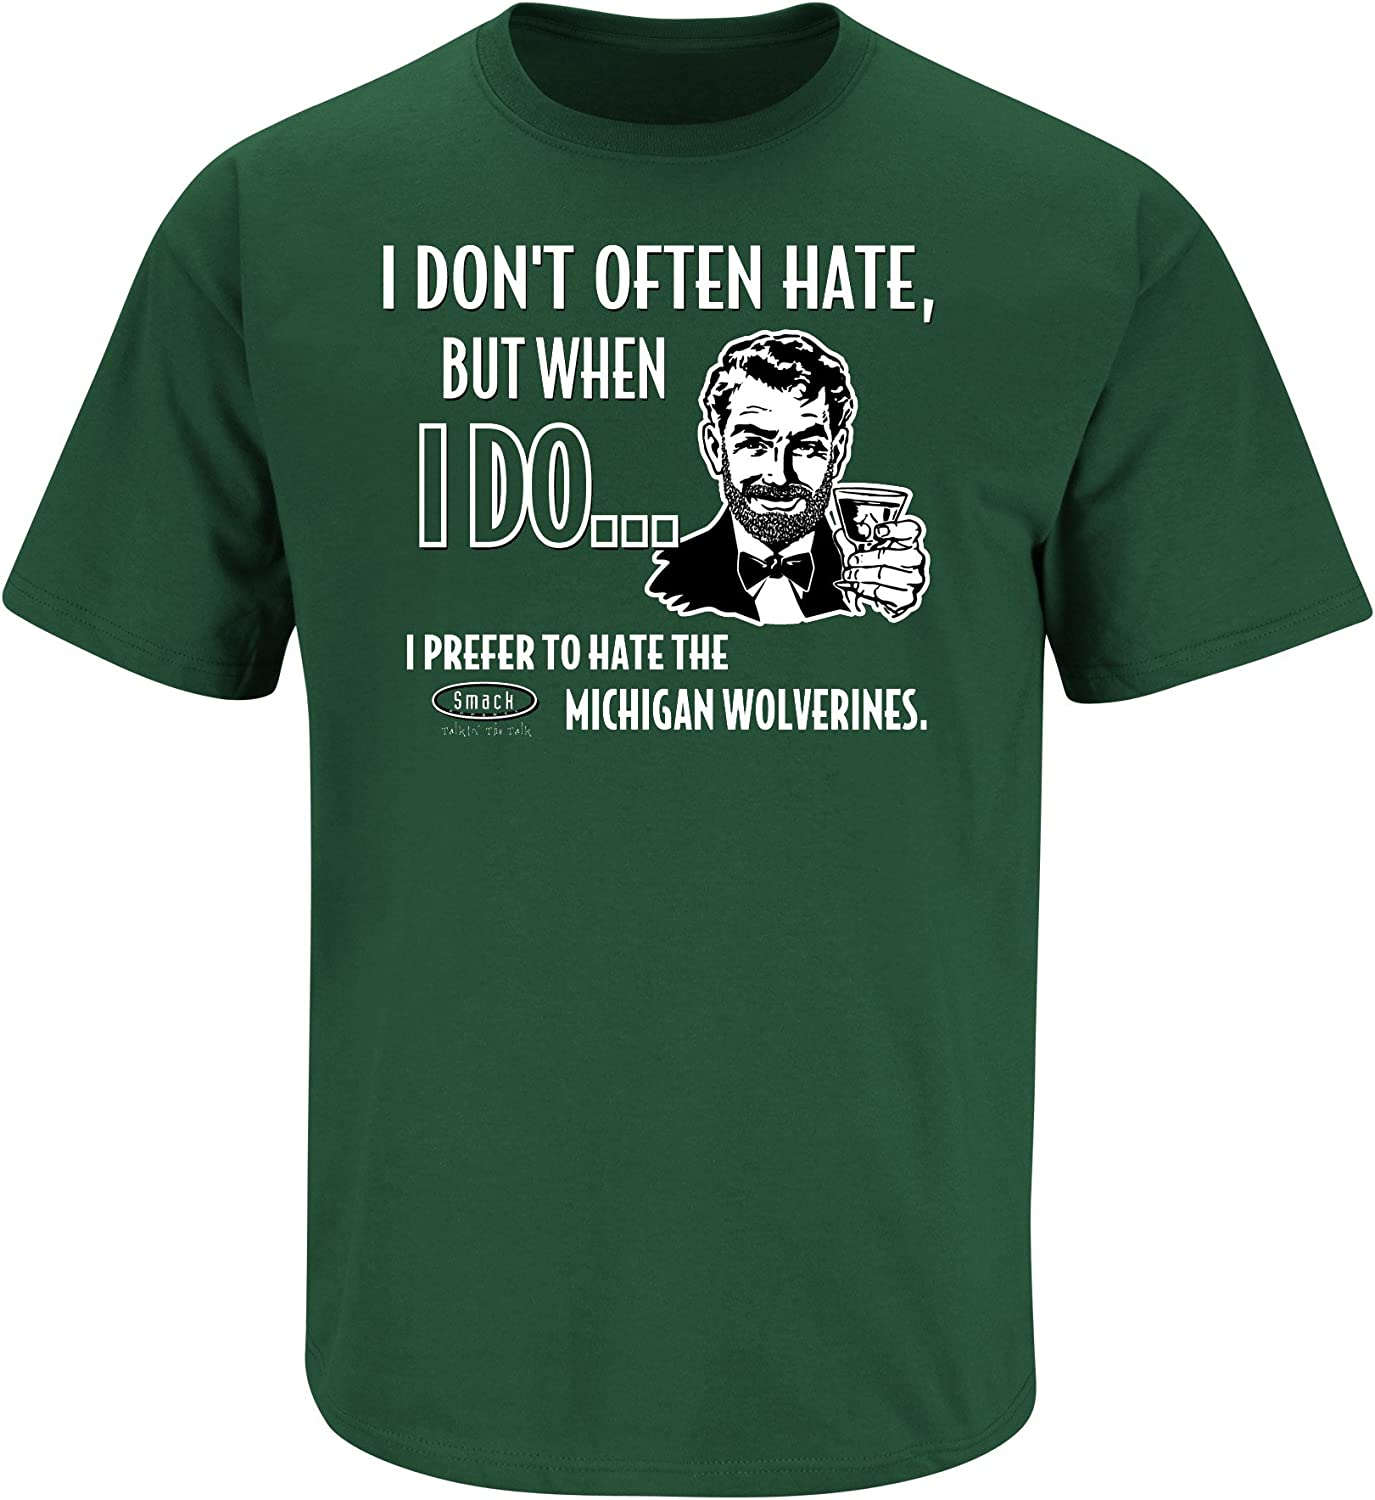 Smack Apparel Michigan State Football Fans I Dont Often Hate Stay Victorious Anti-Wolverine Green T-Shirt S-3X